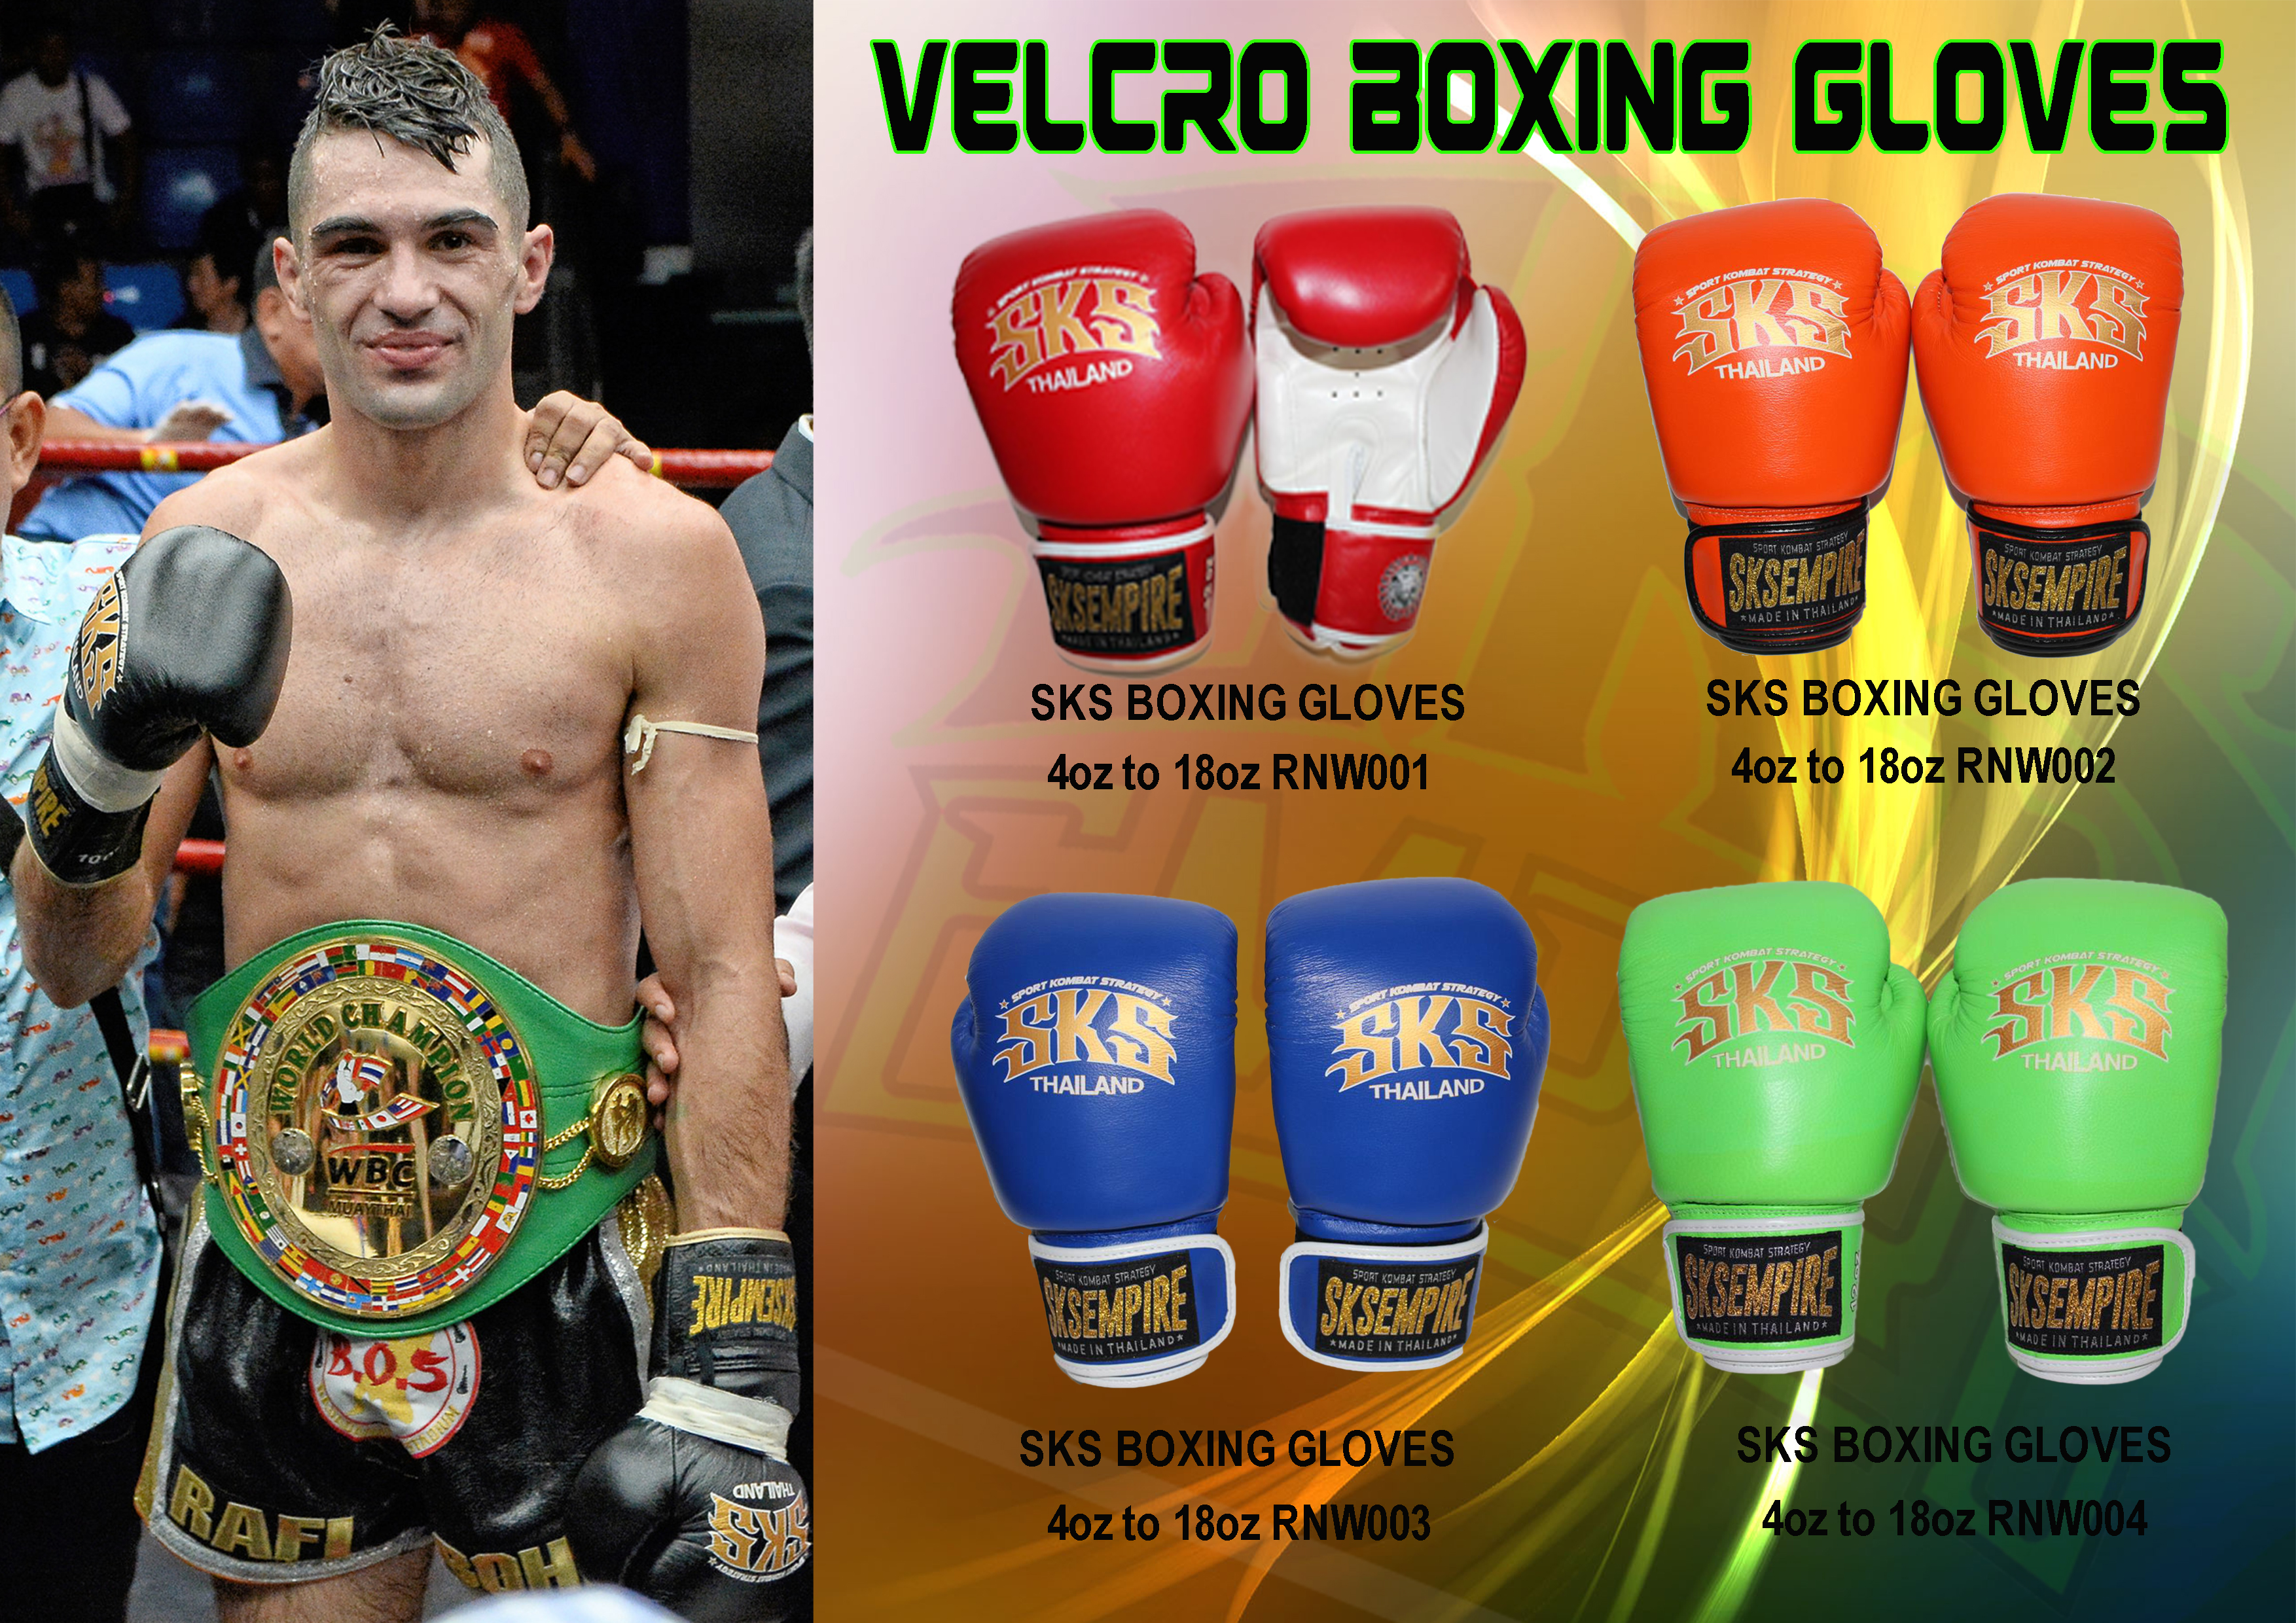 SKS VELCRO BOXING GLOVES